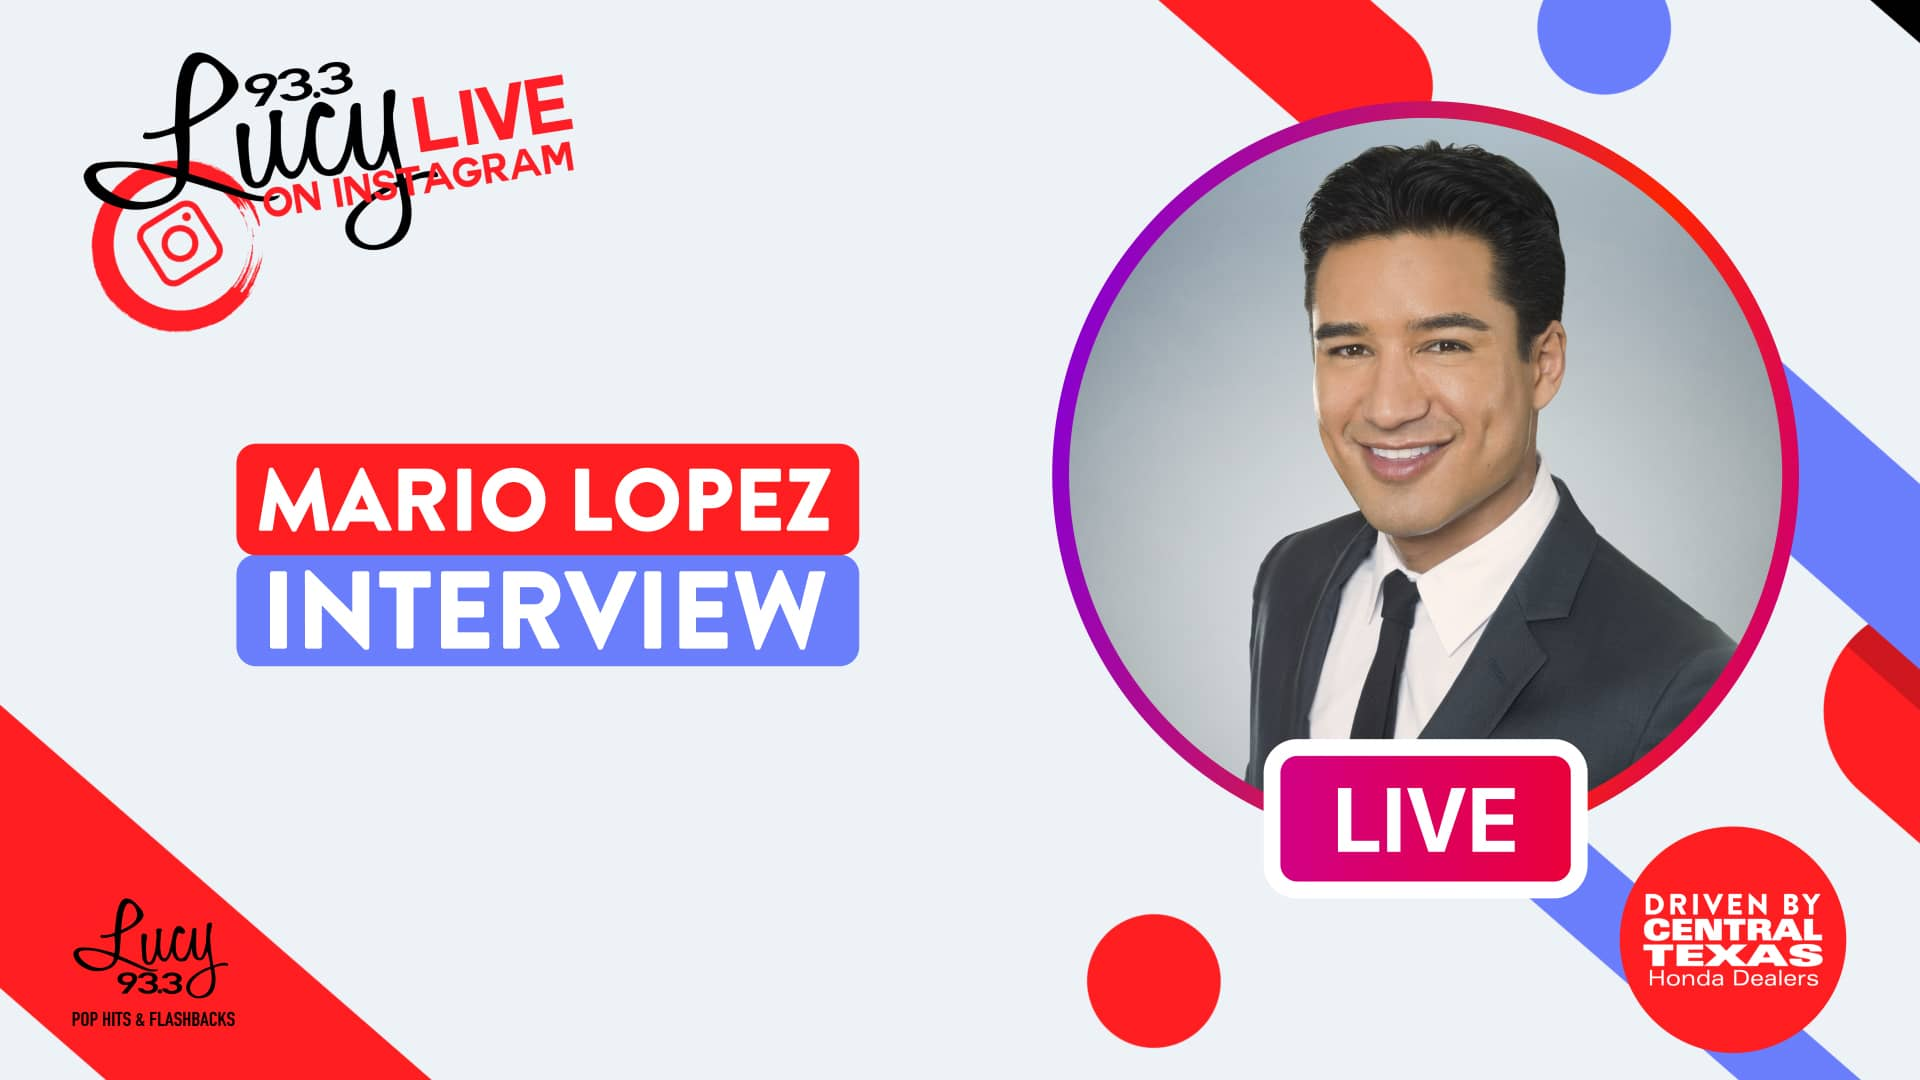 Lucy Live with Mario Lopez